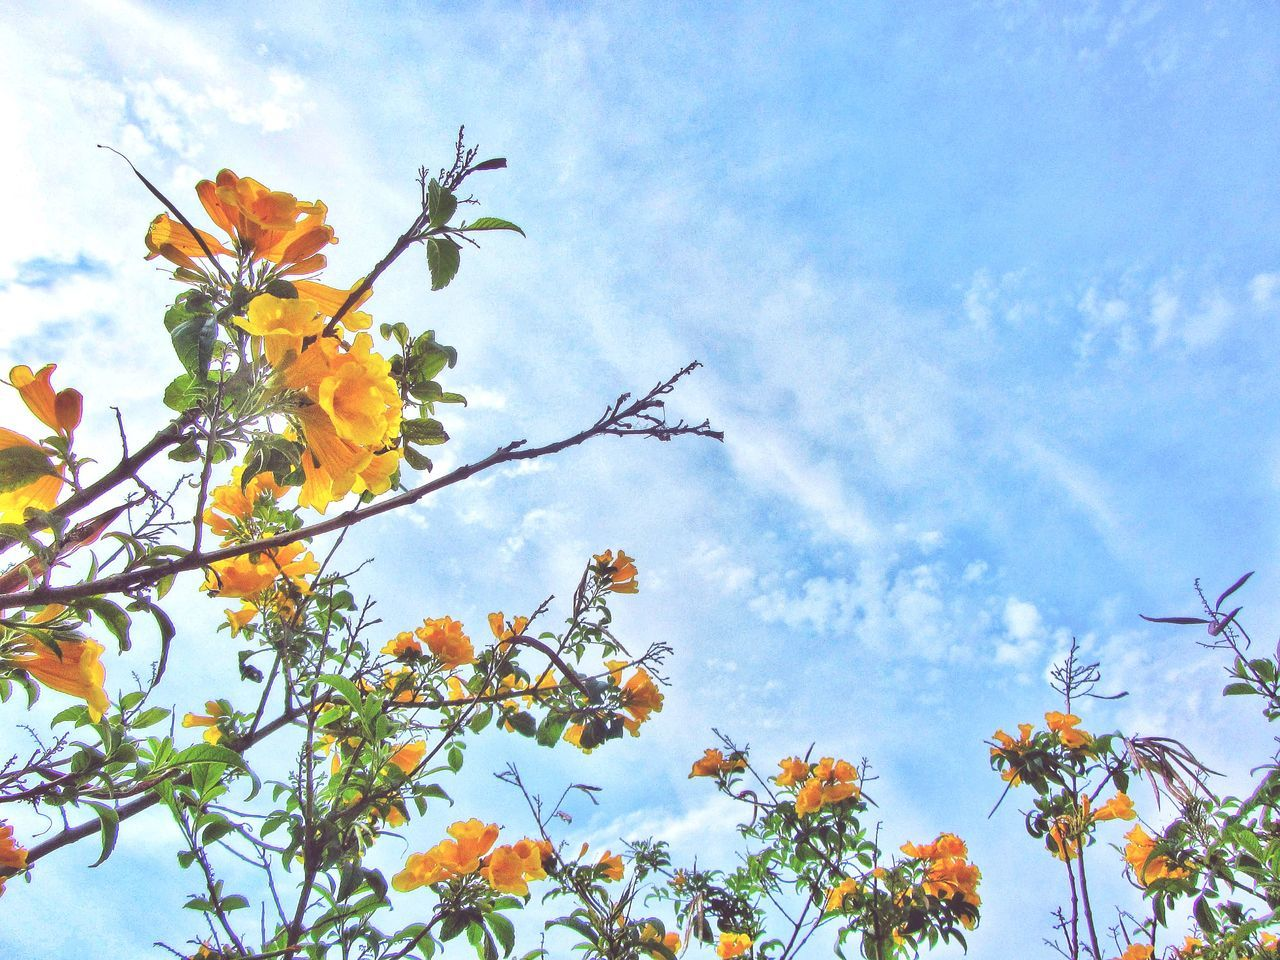 Low Angle View Sky Nature Growth Flower Tree Beauty In Nature Day Outdoors Cloud - Sky Close-up Nature Photography Naturelovers EyeEm Nature Lovers EyeEm Nature Lover Eyeemnaturelover Nature_collection